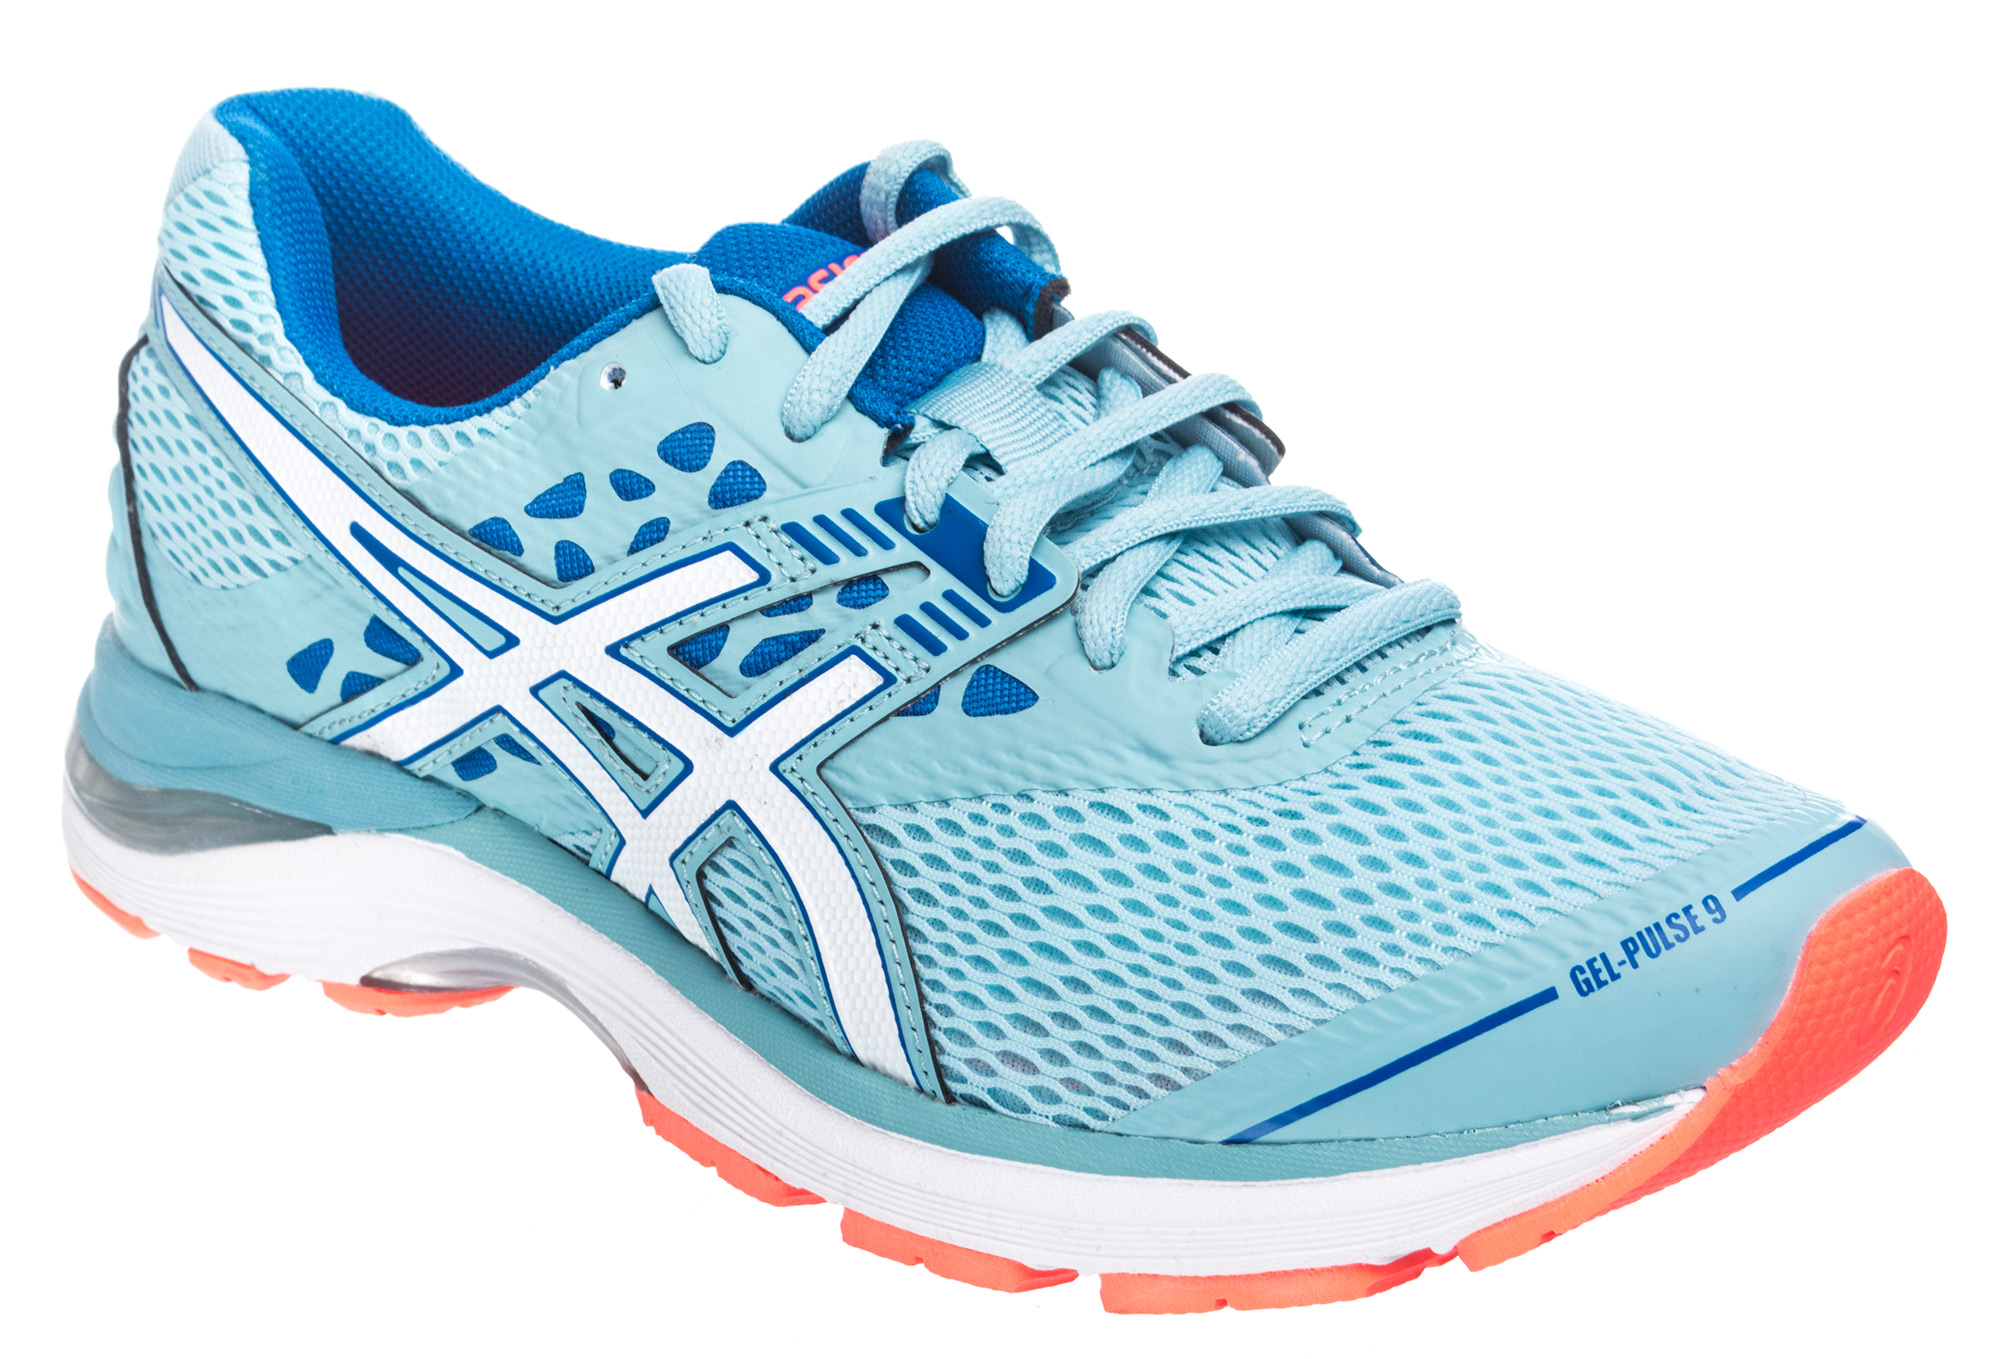 3003bc344c ASICS GEL-PULSE 9 Scarpe da corsa da donna Blu | Alltricks.it